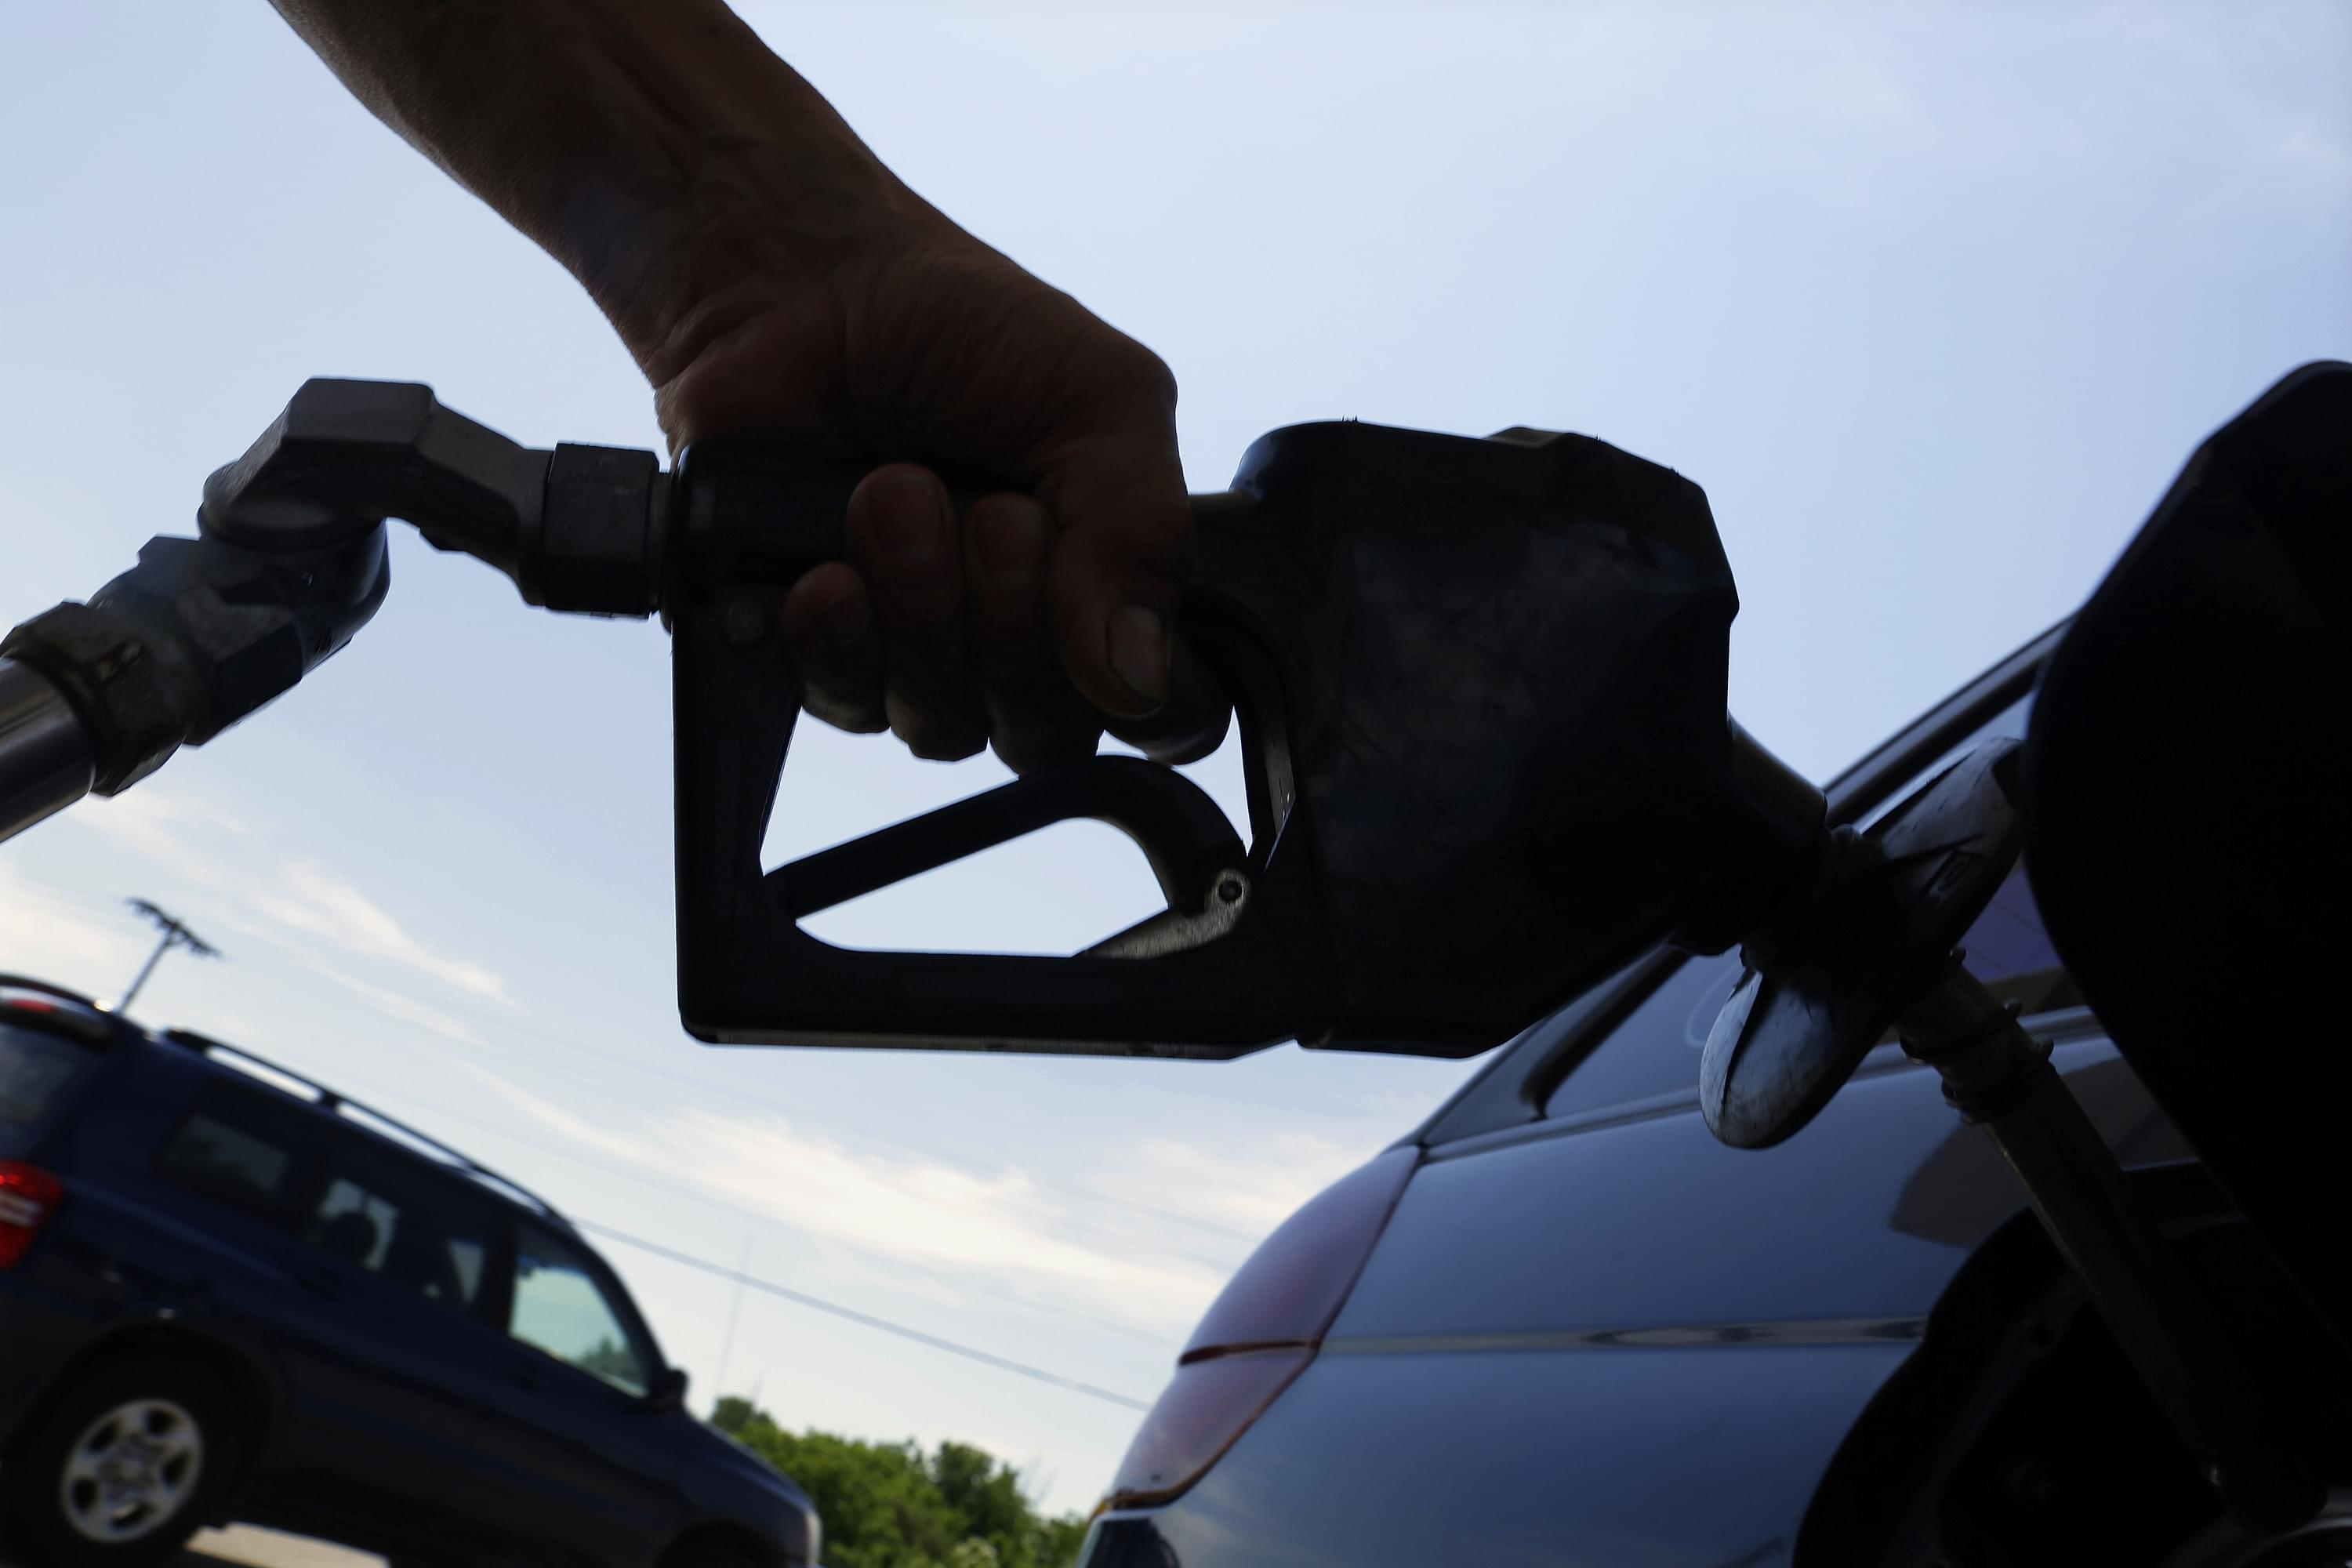 A motorist puts fuel in his car's gas tank at a service station in Springfield, Ill. Illinois lawmakers are considering raising the state's motor fuel tax. Officials say a large amount of the funds usually allocated for road construction we